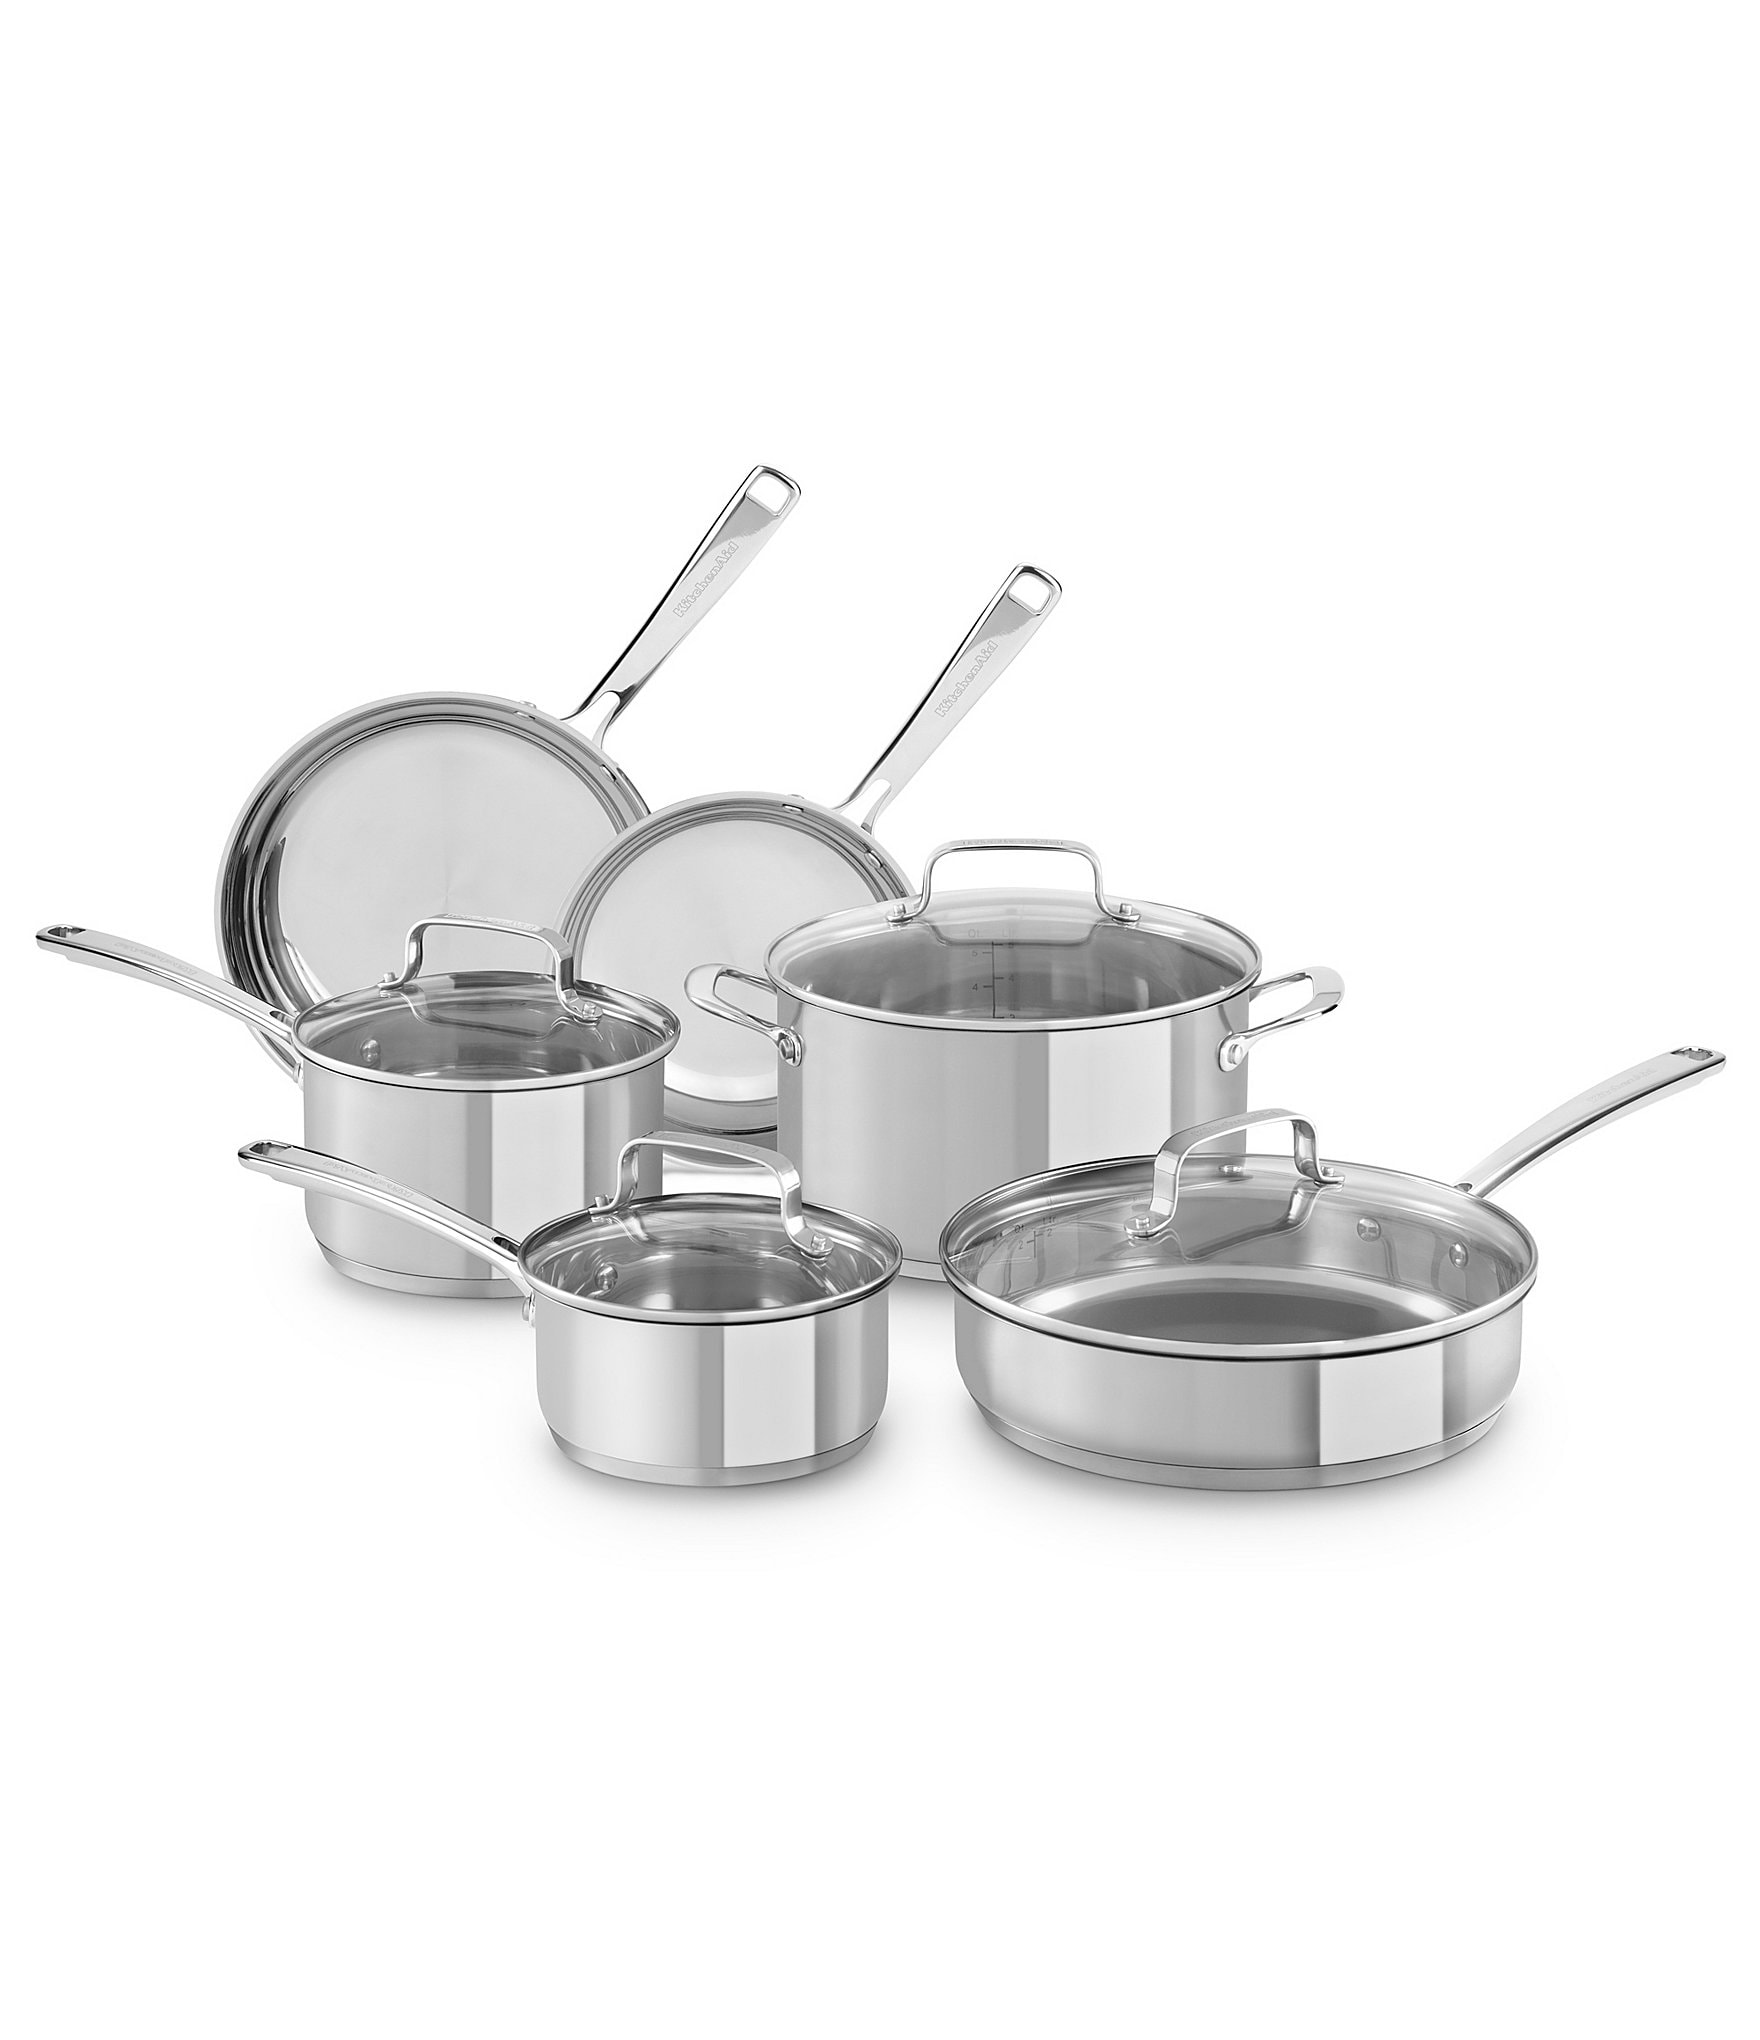 kitchenaid stainless steel 10 piece cookware set dillards. Black Bedroom Furniture Sets. Home Design Ideas